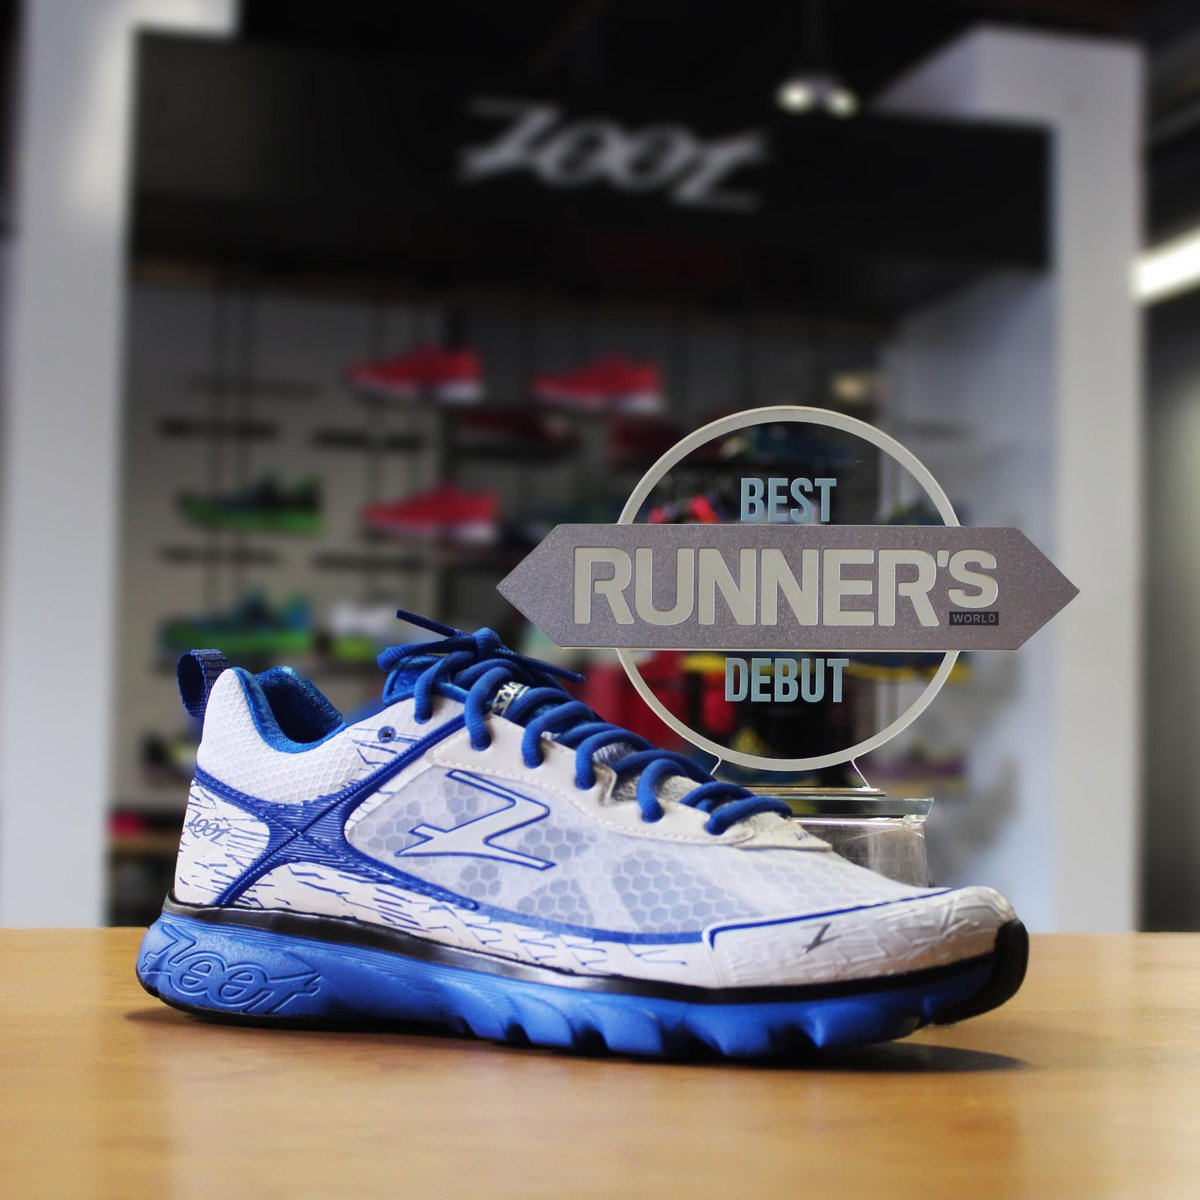 You only have one chance to make a first impression. Solana - Best Debut. Thanks for the introduction @runnersworld http://t.co/6bp9NB0MVS